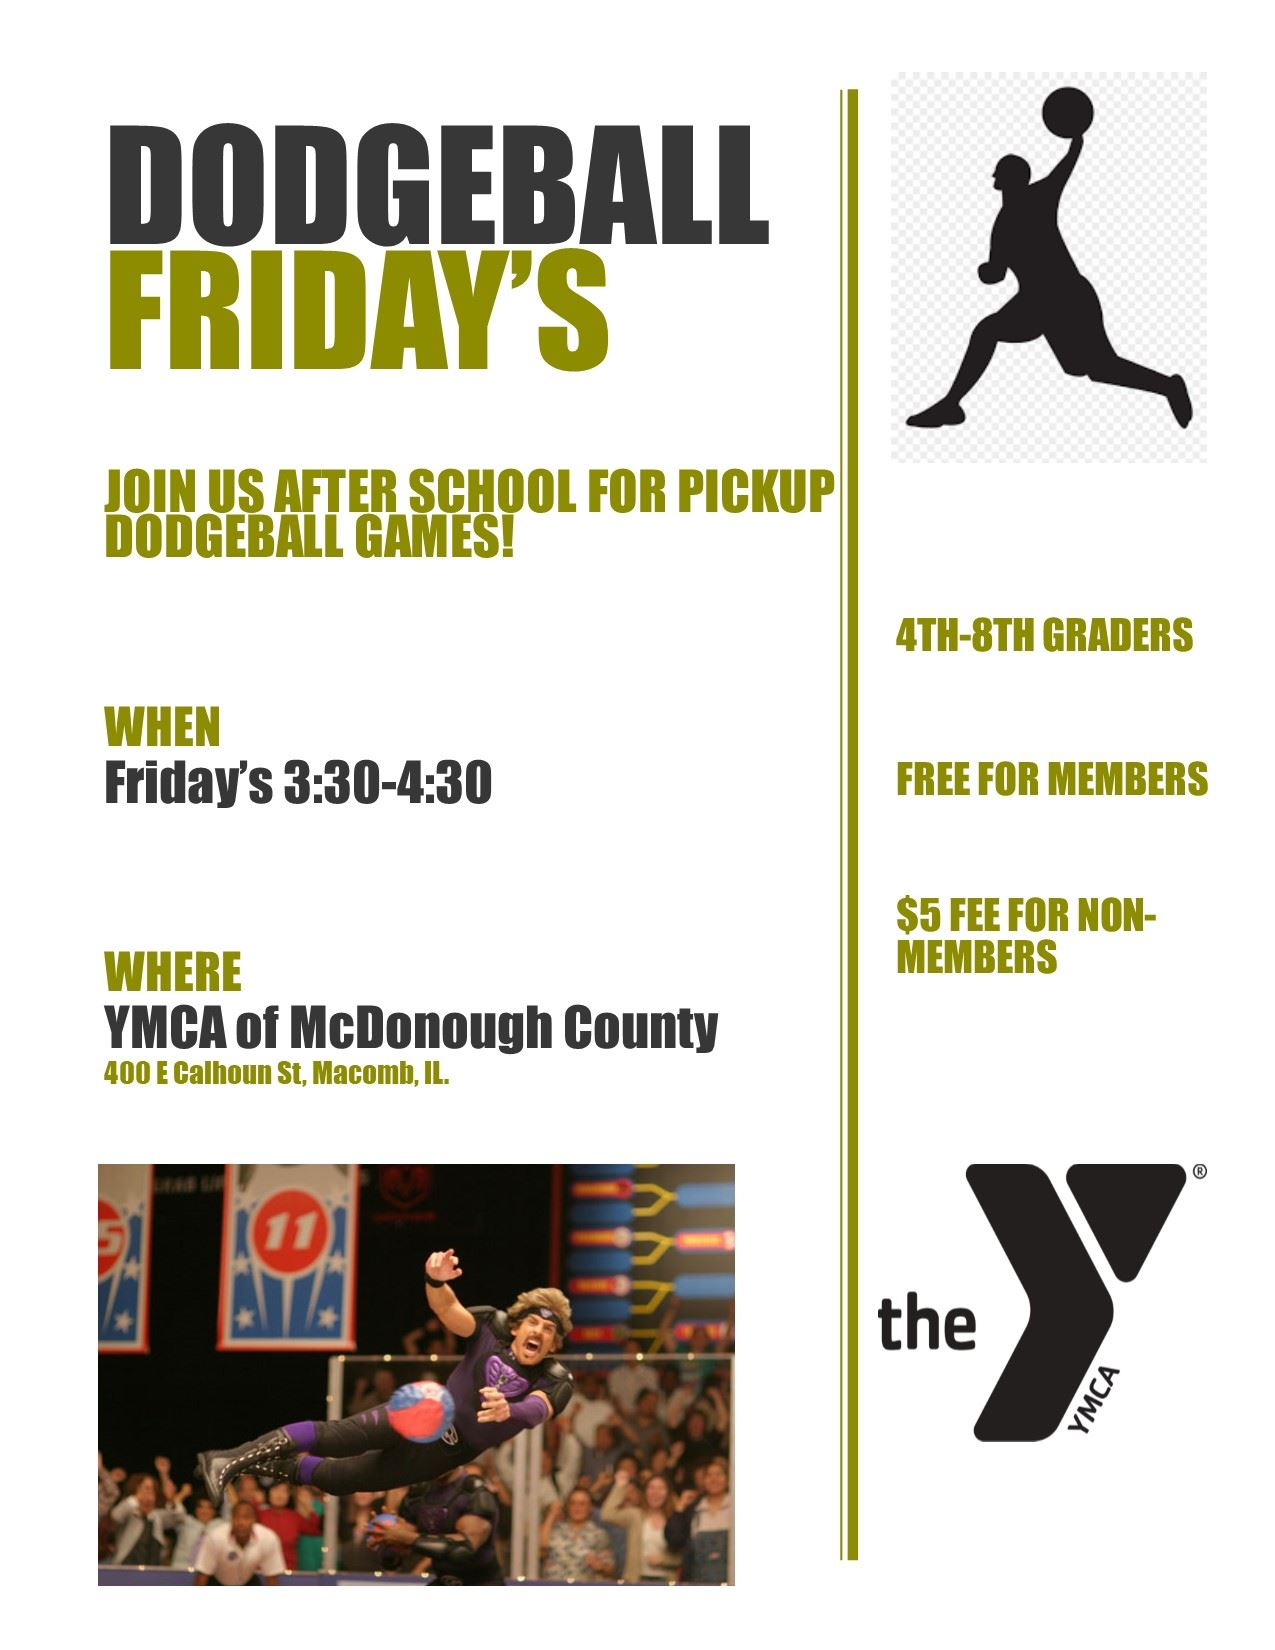 YMCA dodgeball fri